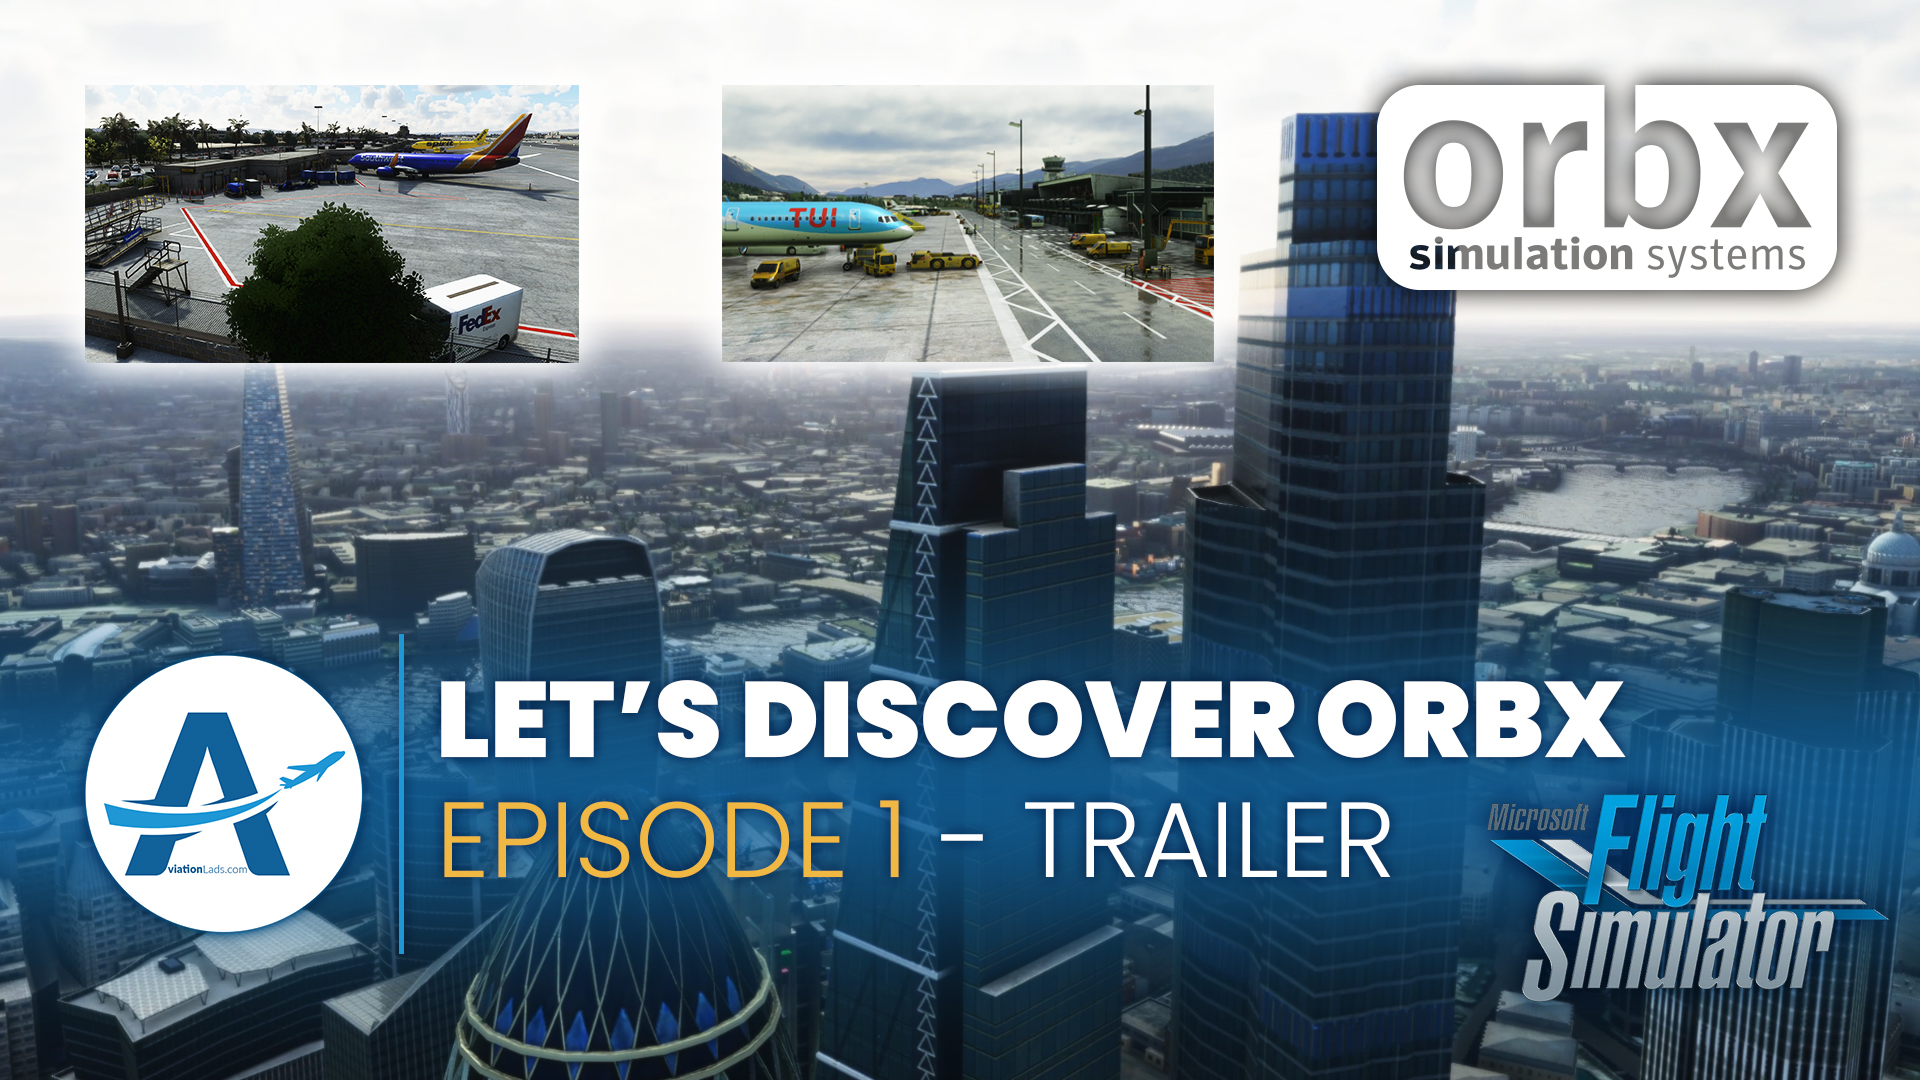 [TRAILER] Let's discover Orbx | Ep.1